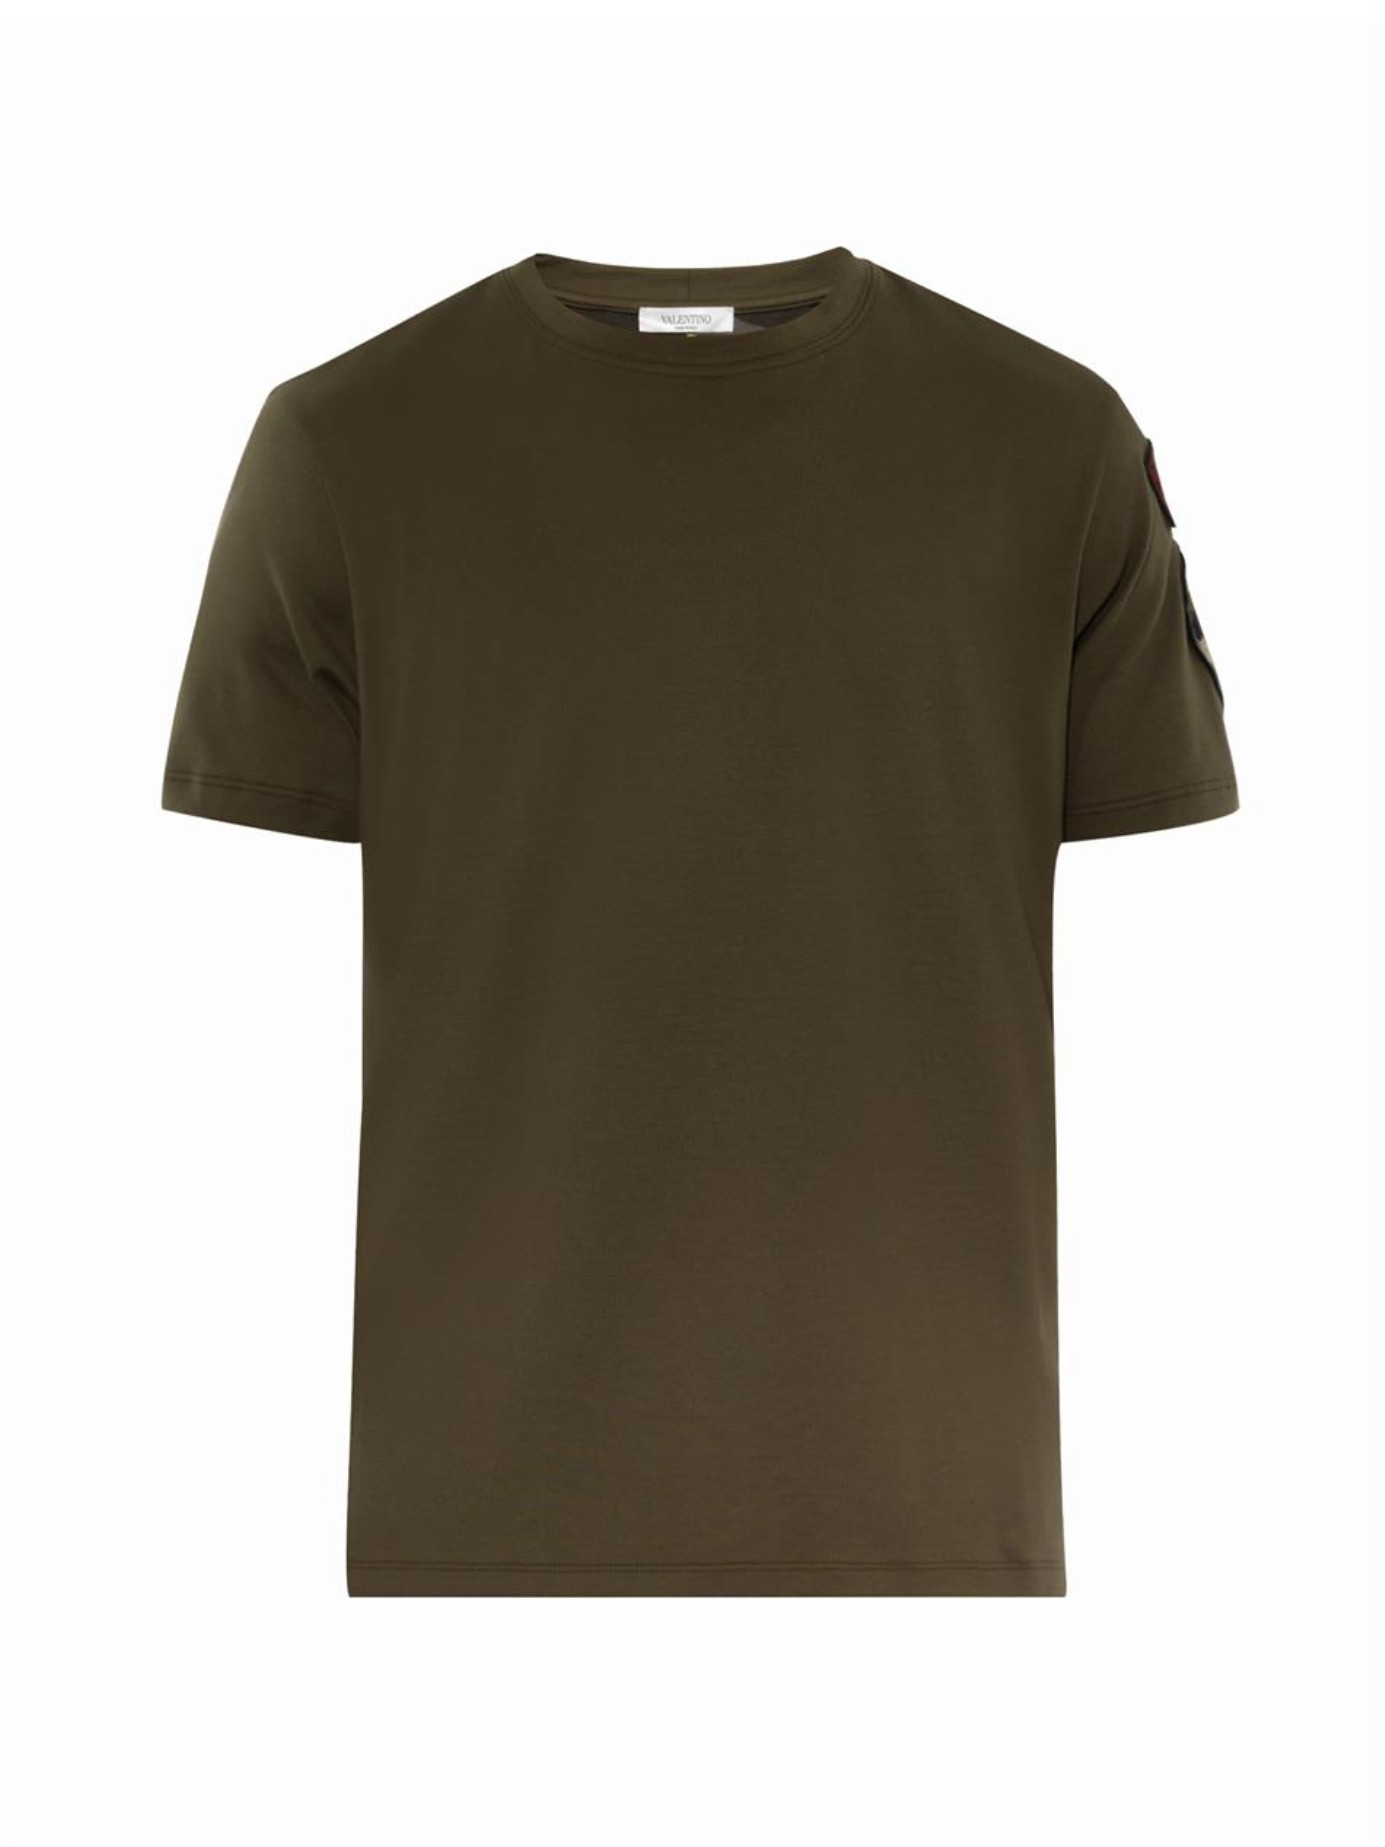 Lyst - Valentino Embroidered-Patch Army T-Shirt in Green for Men 2858fa3351c